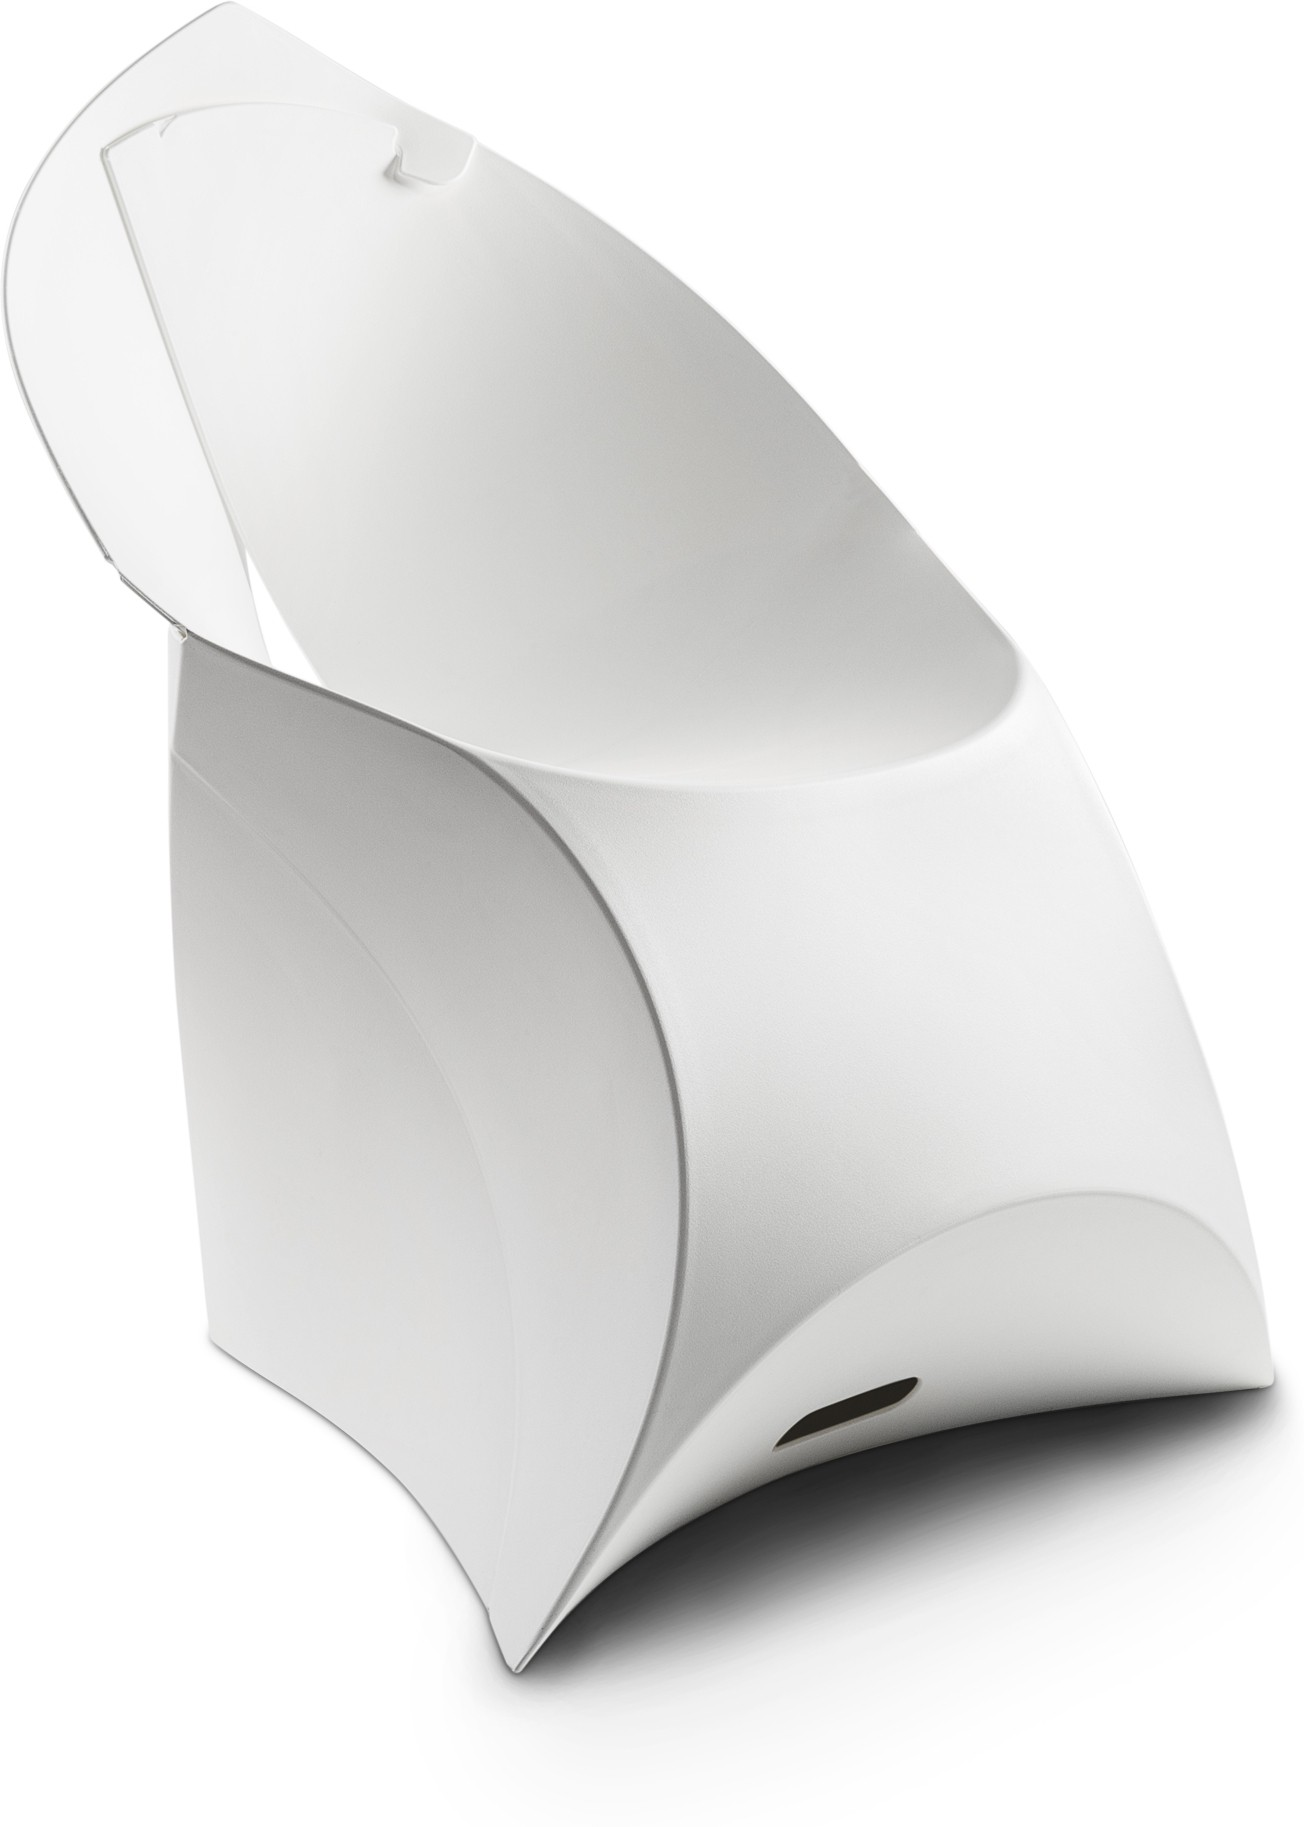 View Flux Plastic Living Room Chair(Finish Color - Pure White) Furniture (Flux)